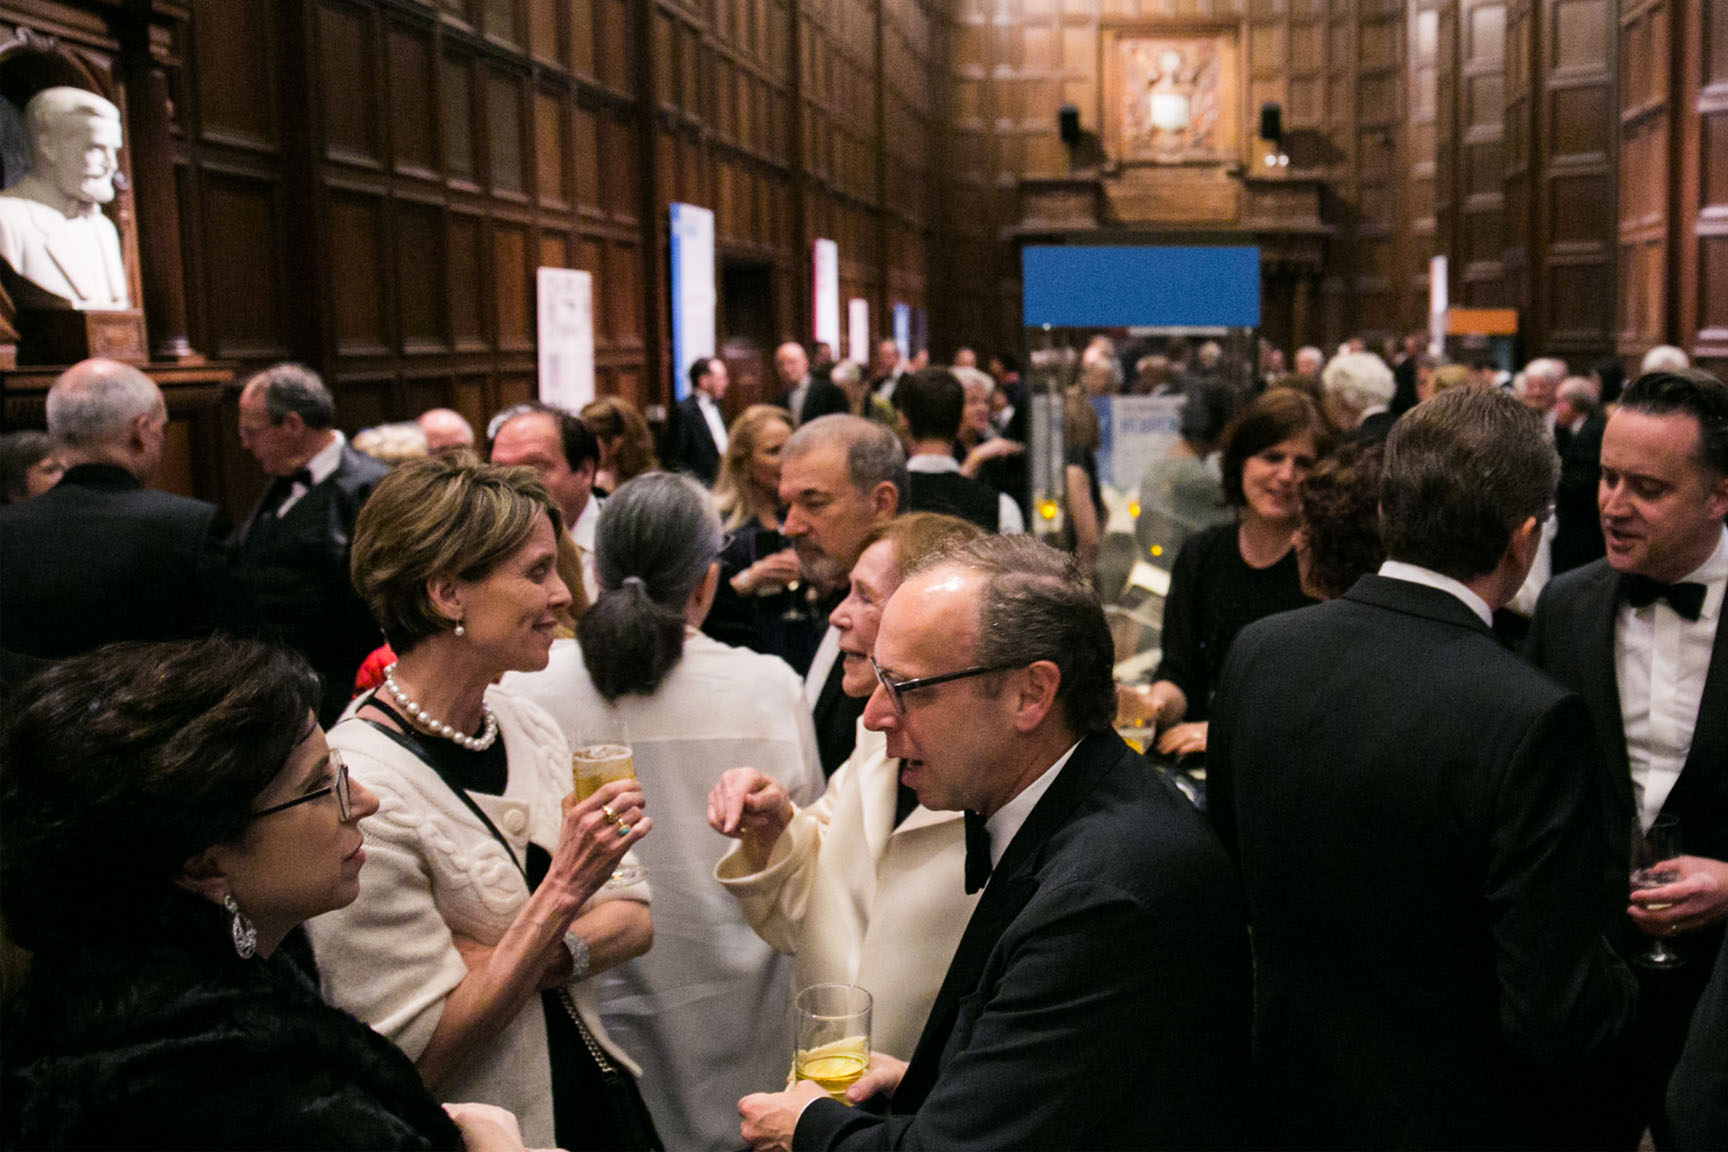 Folger Gala guests enjoying the reception in the Great Hall